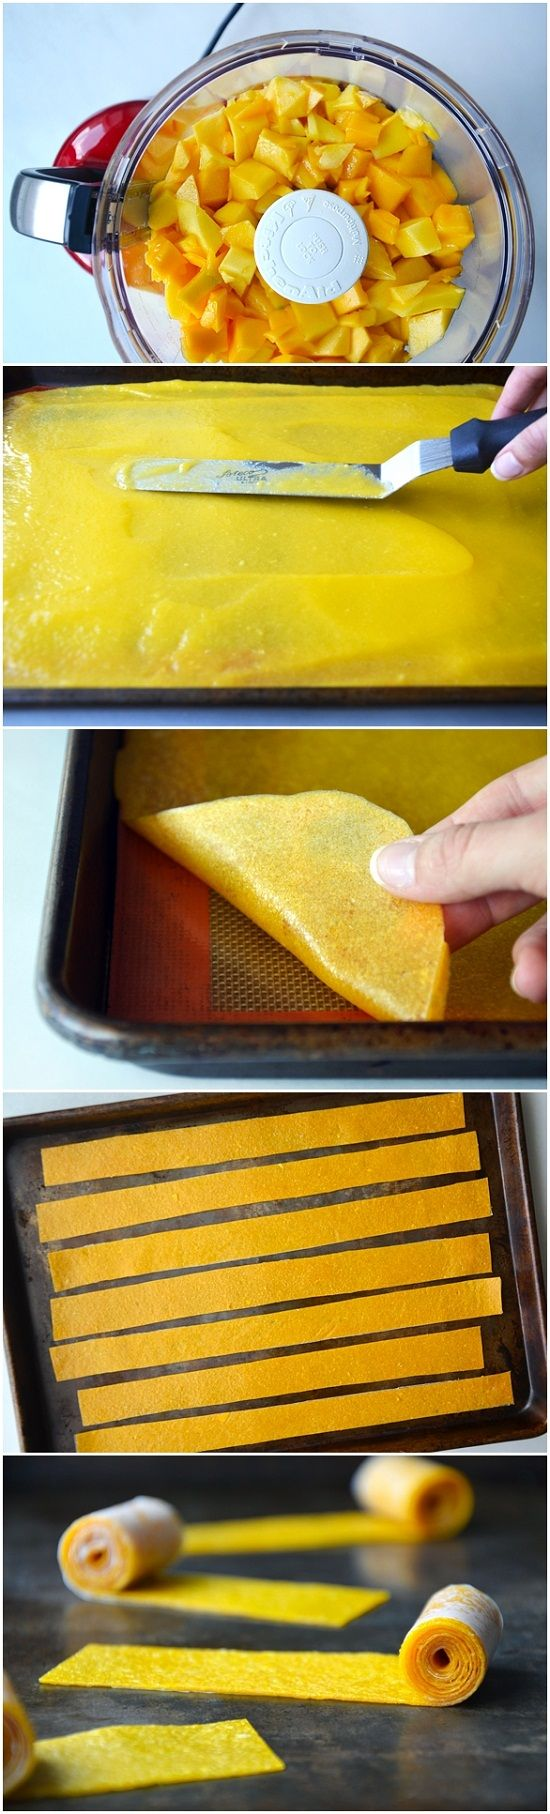 No.  Way.   Homemade mango fruit rollups - the only ingredient is mango.  Puree, spread, bake 3-4 hours at 175 and done. by justataste #Mango #Fruit_Roll_Ups